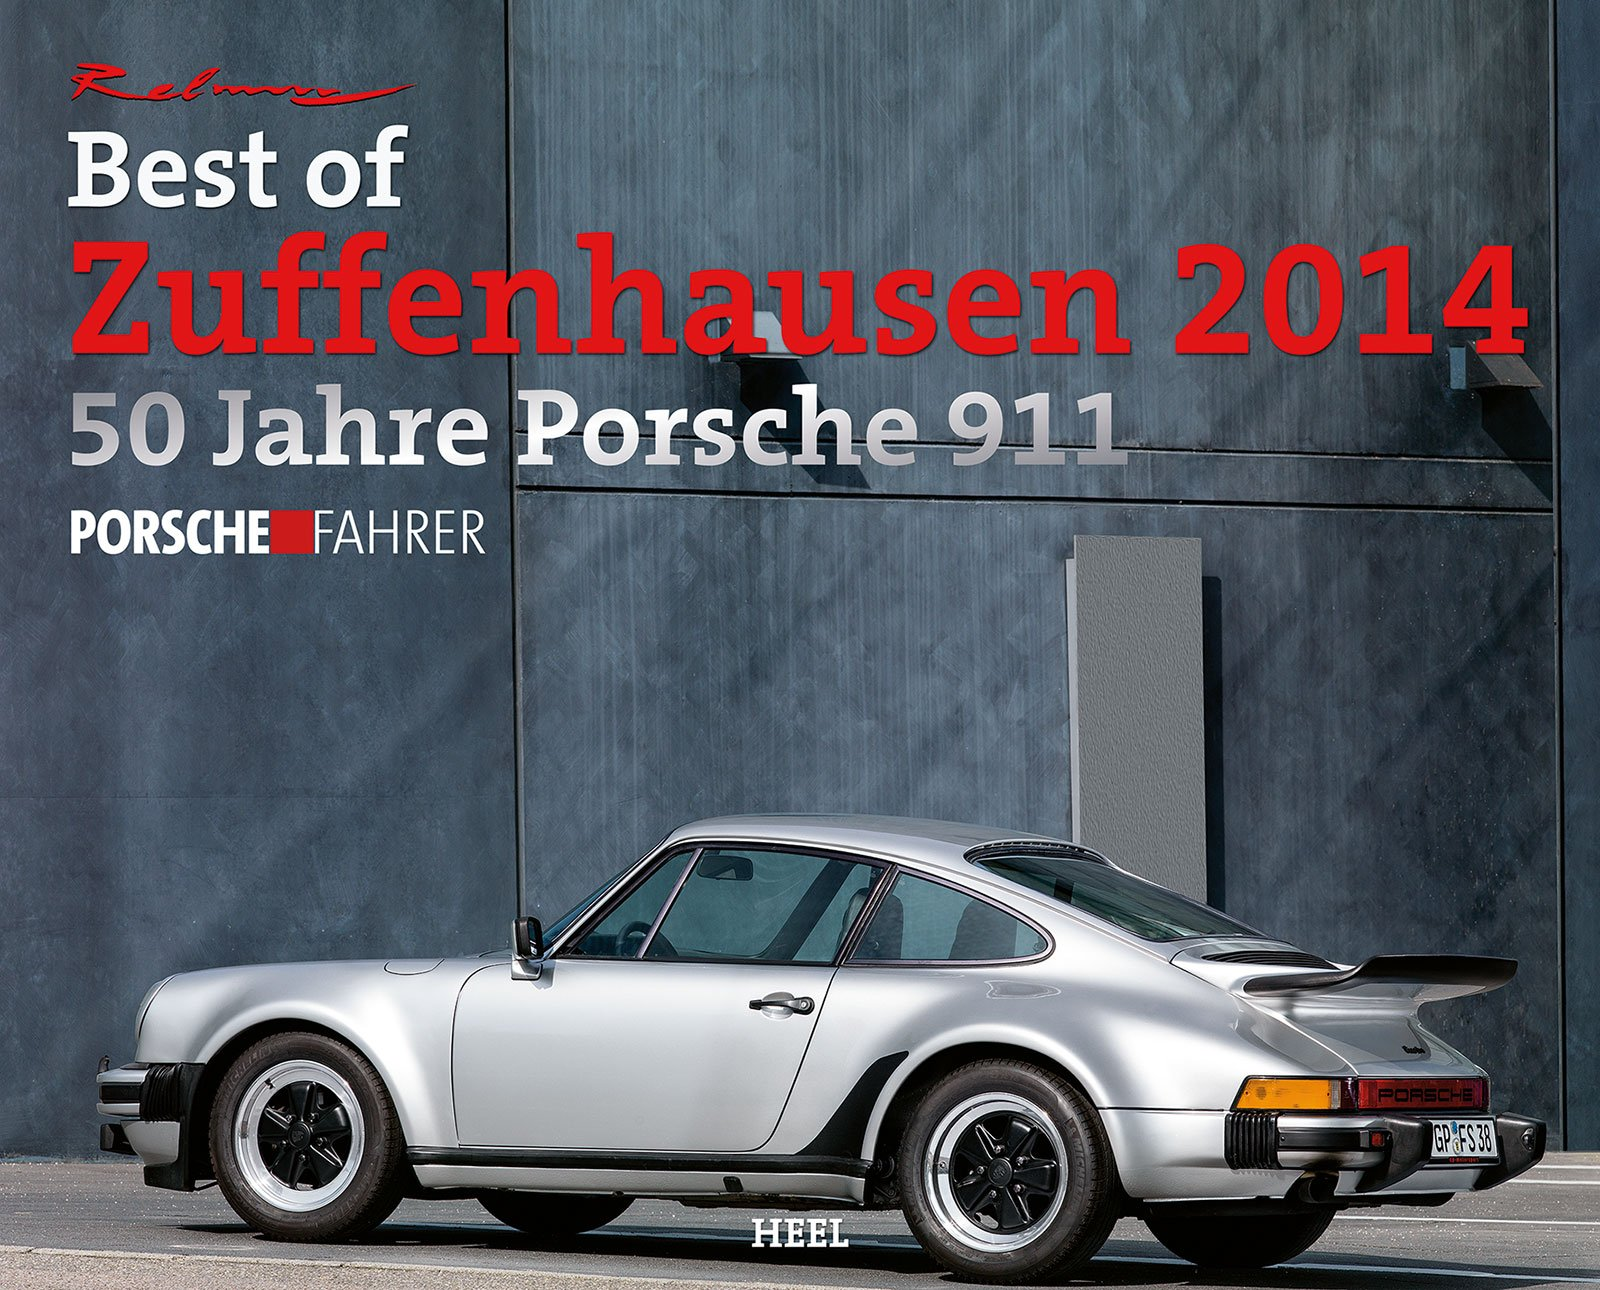 Best of Zuffenhausen 2014